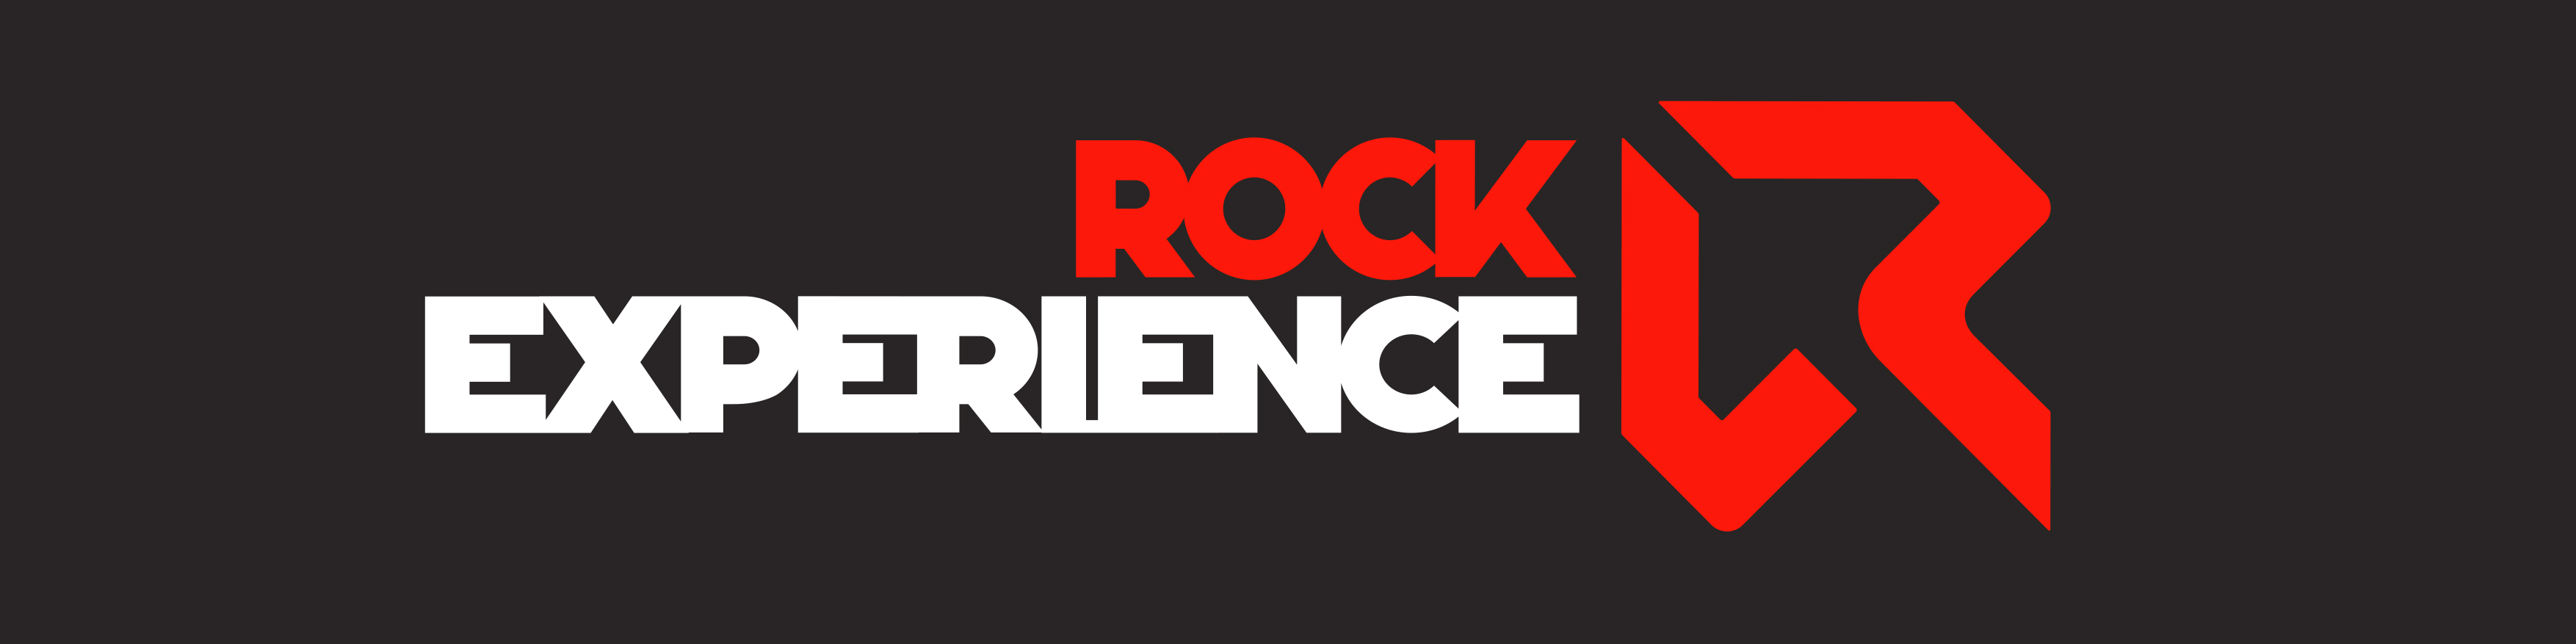 logo rock experience on gray 01